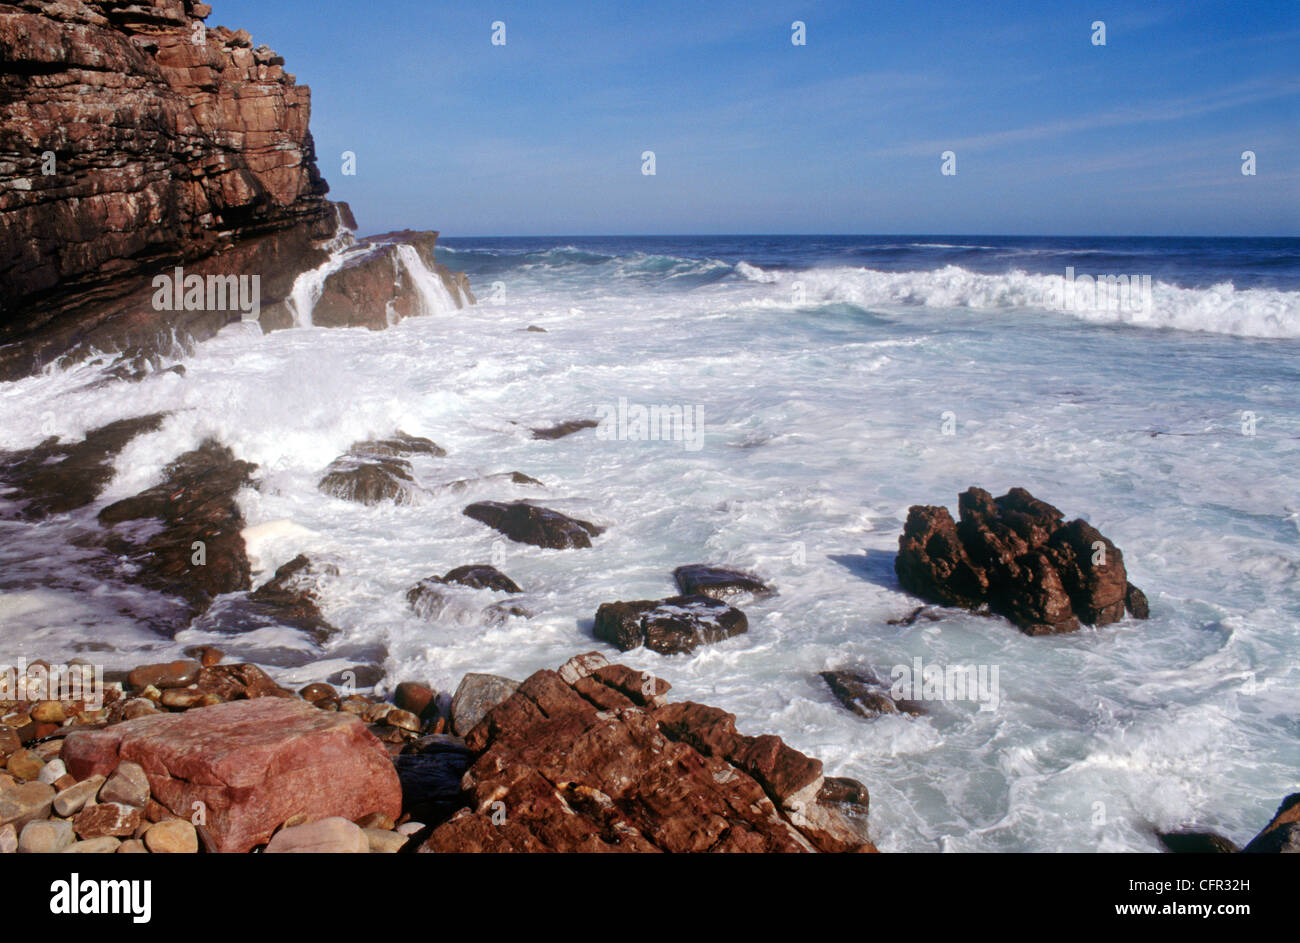 Cabo de Buena Esperanza. Sudáfrica. Stock Photo